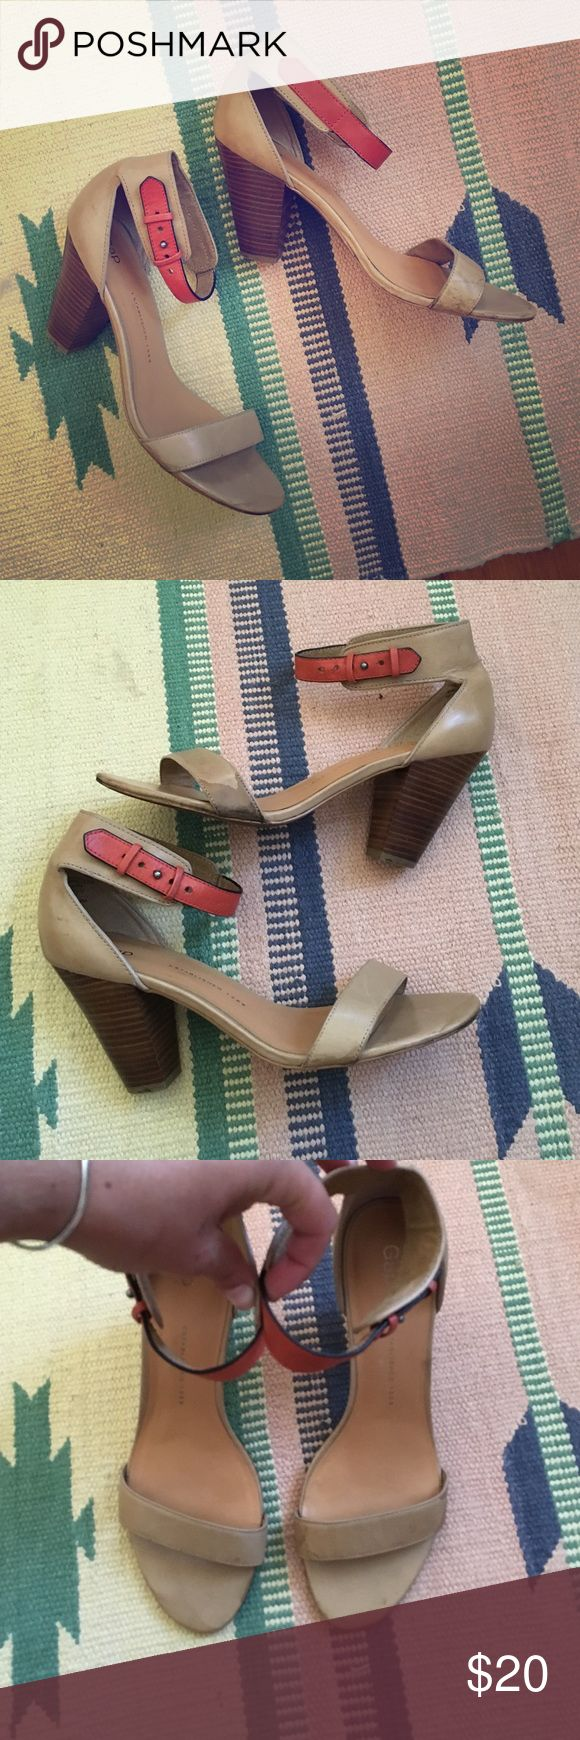 Gap heels In good condition, slightly dirty but hard to notice when wearing! Also may be able to spruce up! Haven't tried. Pricing low! Leather and extremely comfortable and cute GAP Shoes Heels